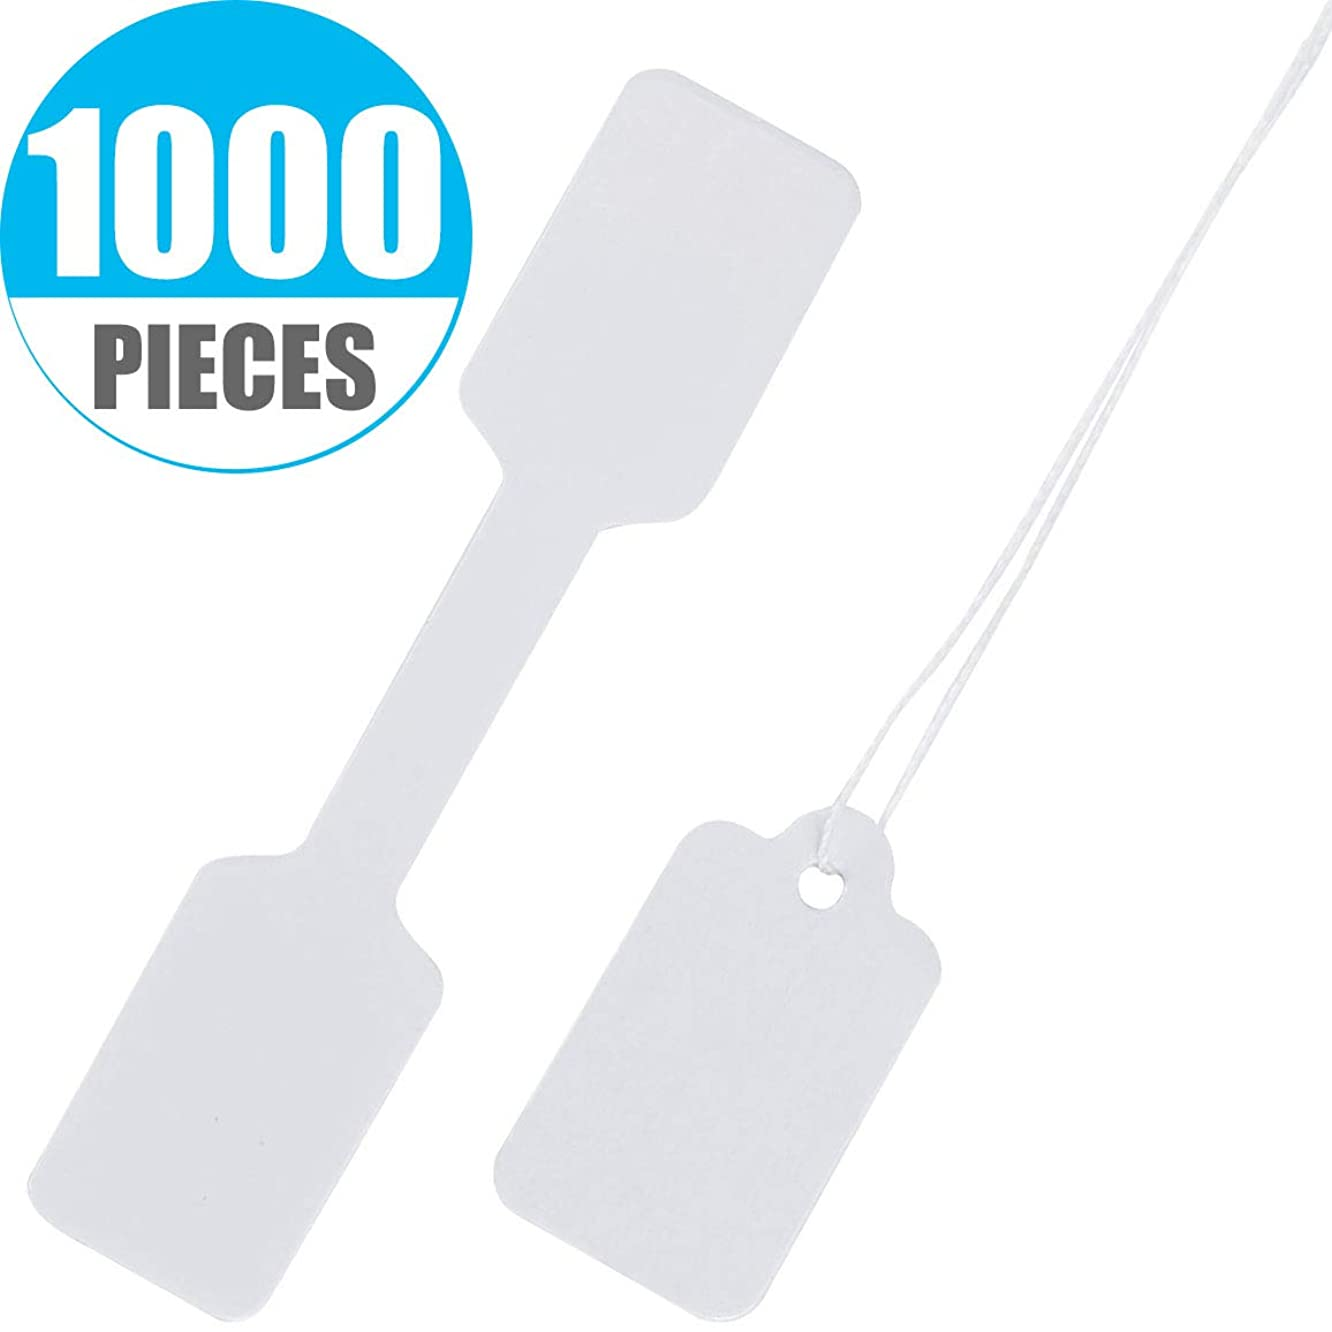 Onwon 1000 Pcs Price Labels,Necklace Ring Jewelry Writable Sticker Price Tags for Product Jewelry Clothing, White-500 Pieces Self Adhesive Price Labels and 500 Pieces String Marking Strung Tags.